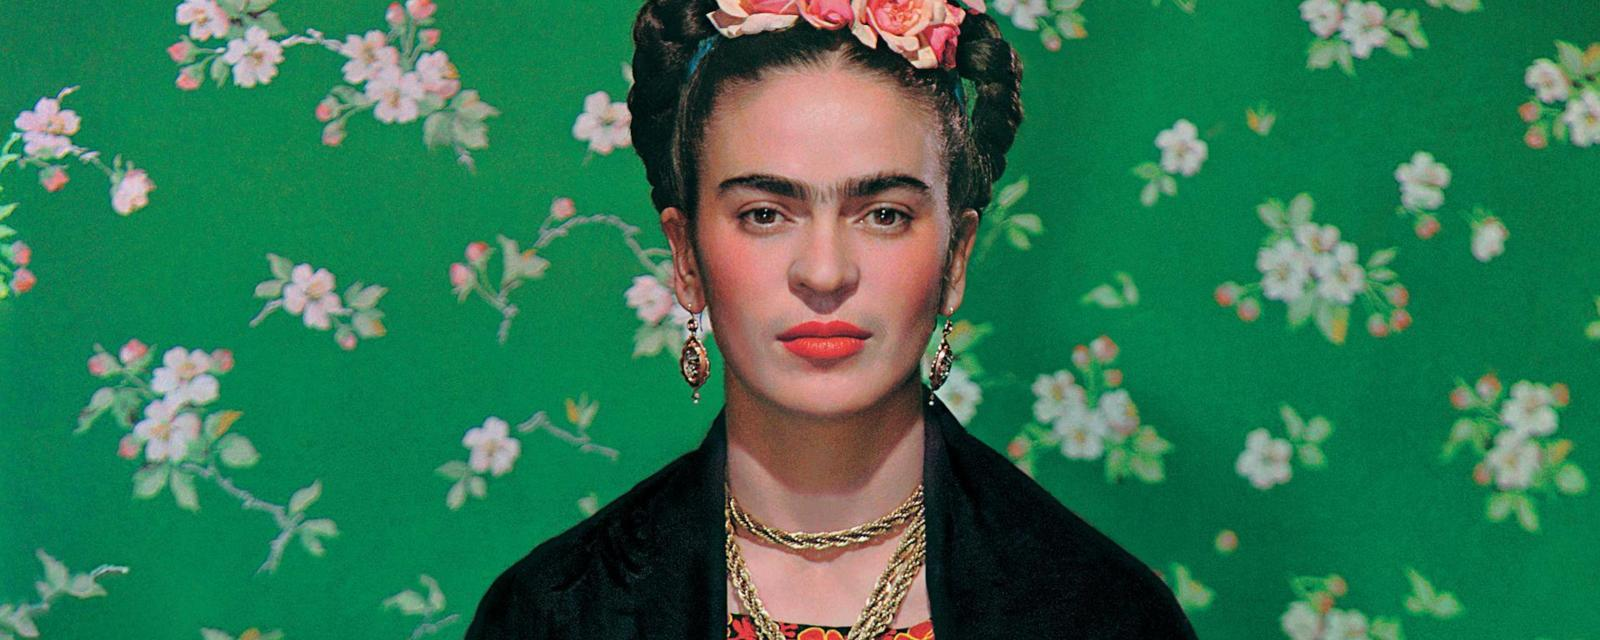 Artist Frida Kahlo seen in front of green wallpaper with floral print